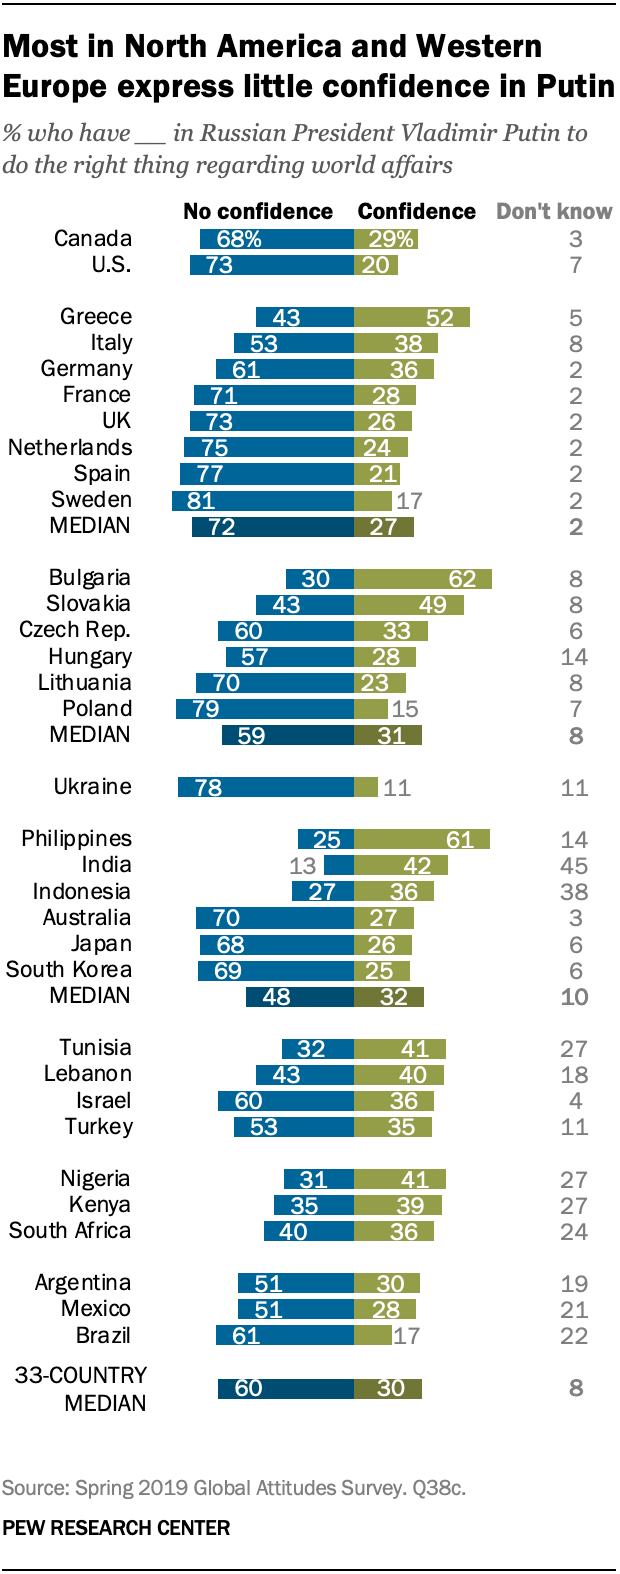 Most in North America and Western Europe express little confidence in Putin